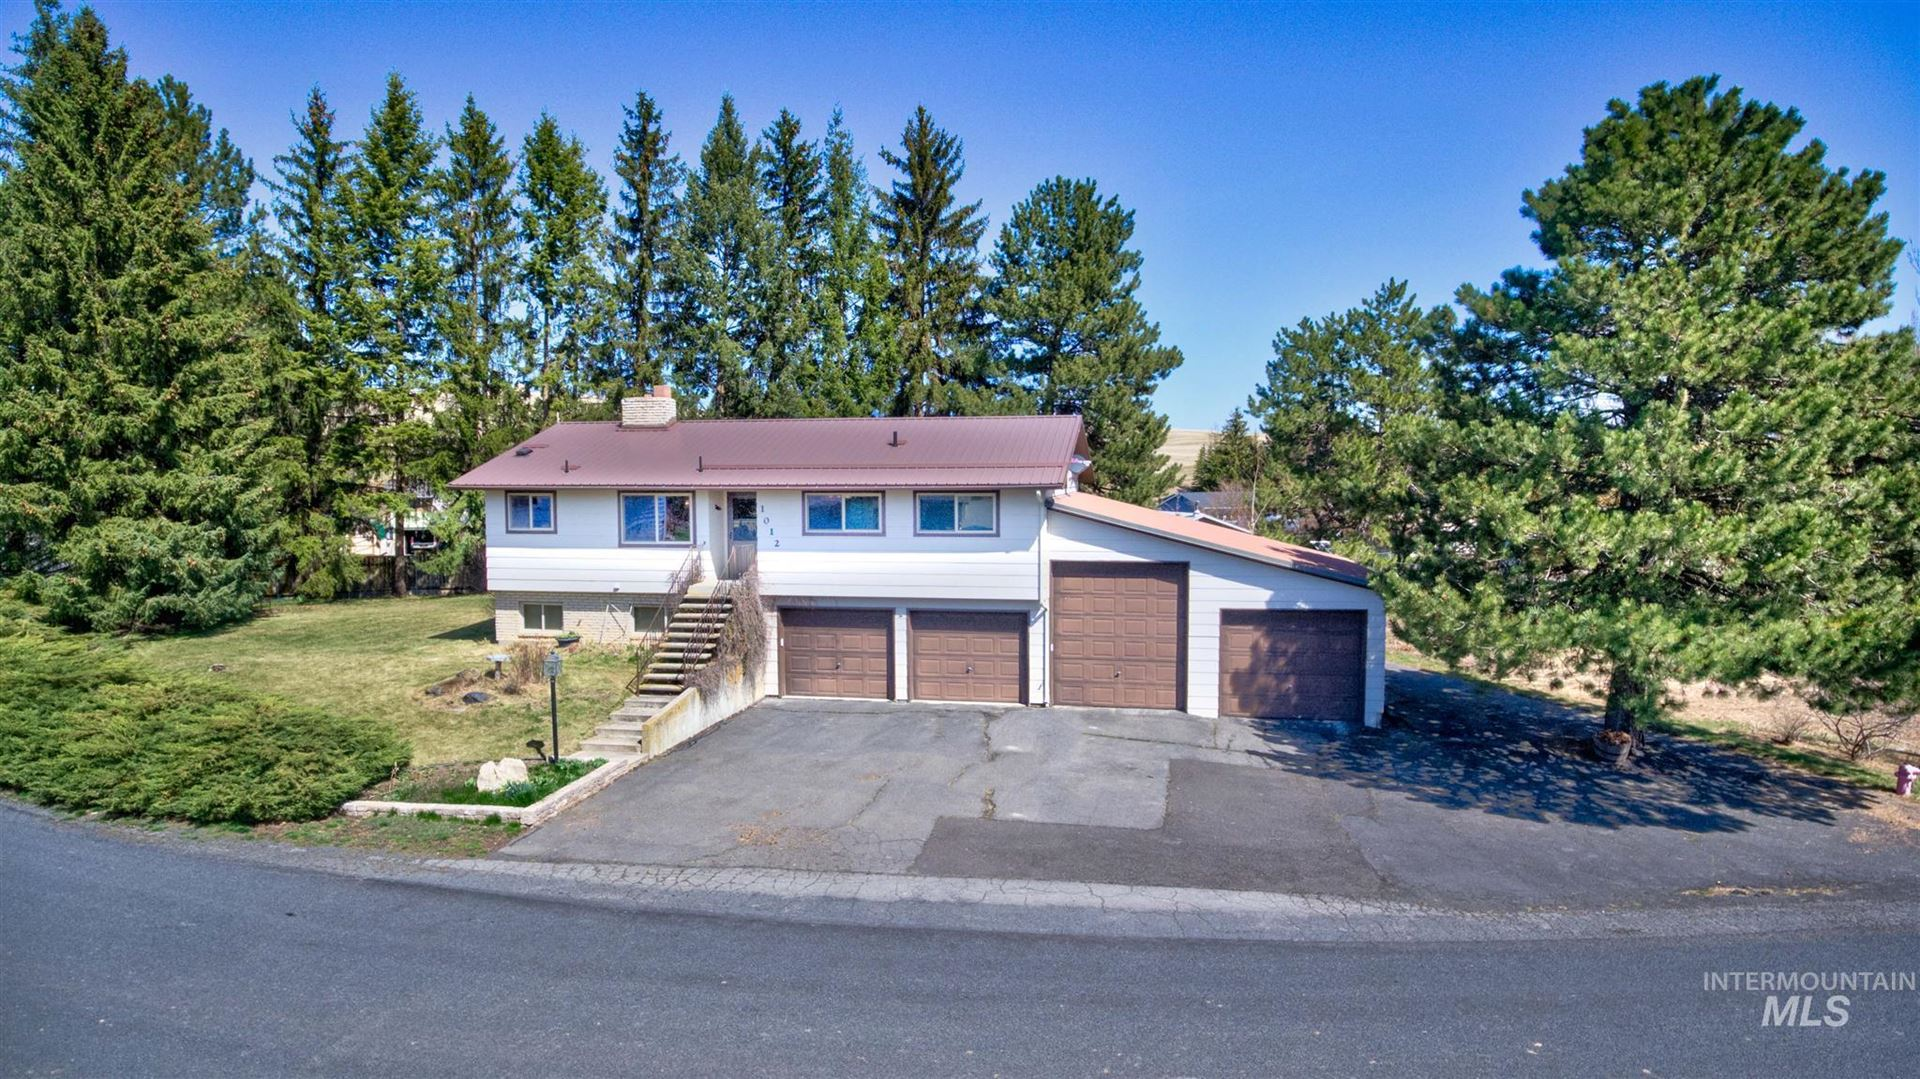 Photo of 1012 Grand Fir Dr., Moscow, ID 83843 (MLS # 98798739)